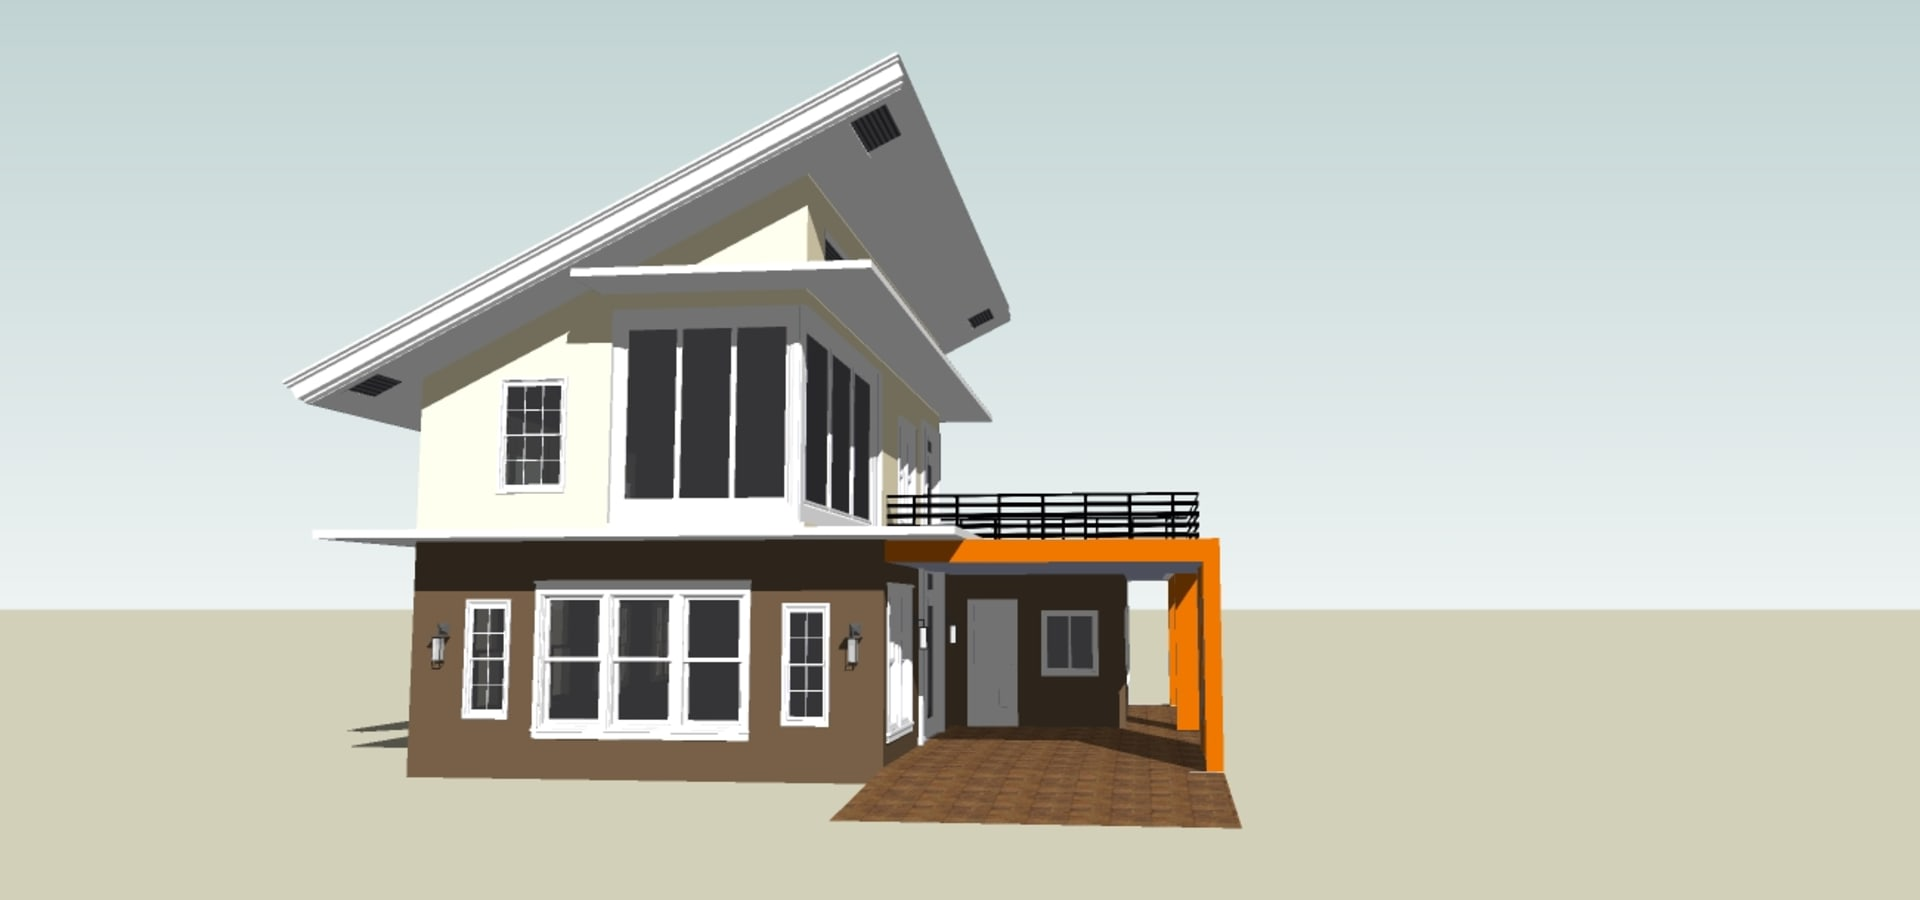 FgLaborce architectural services